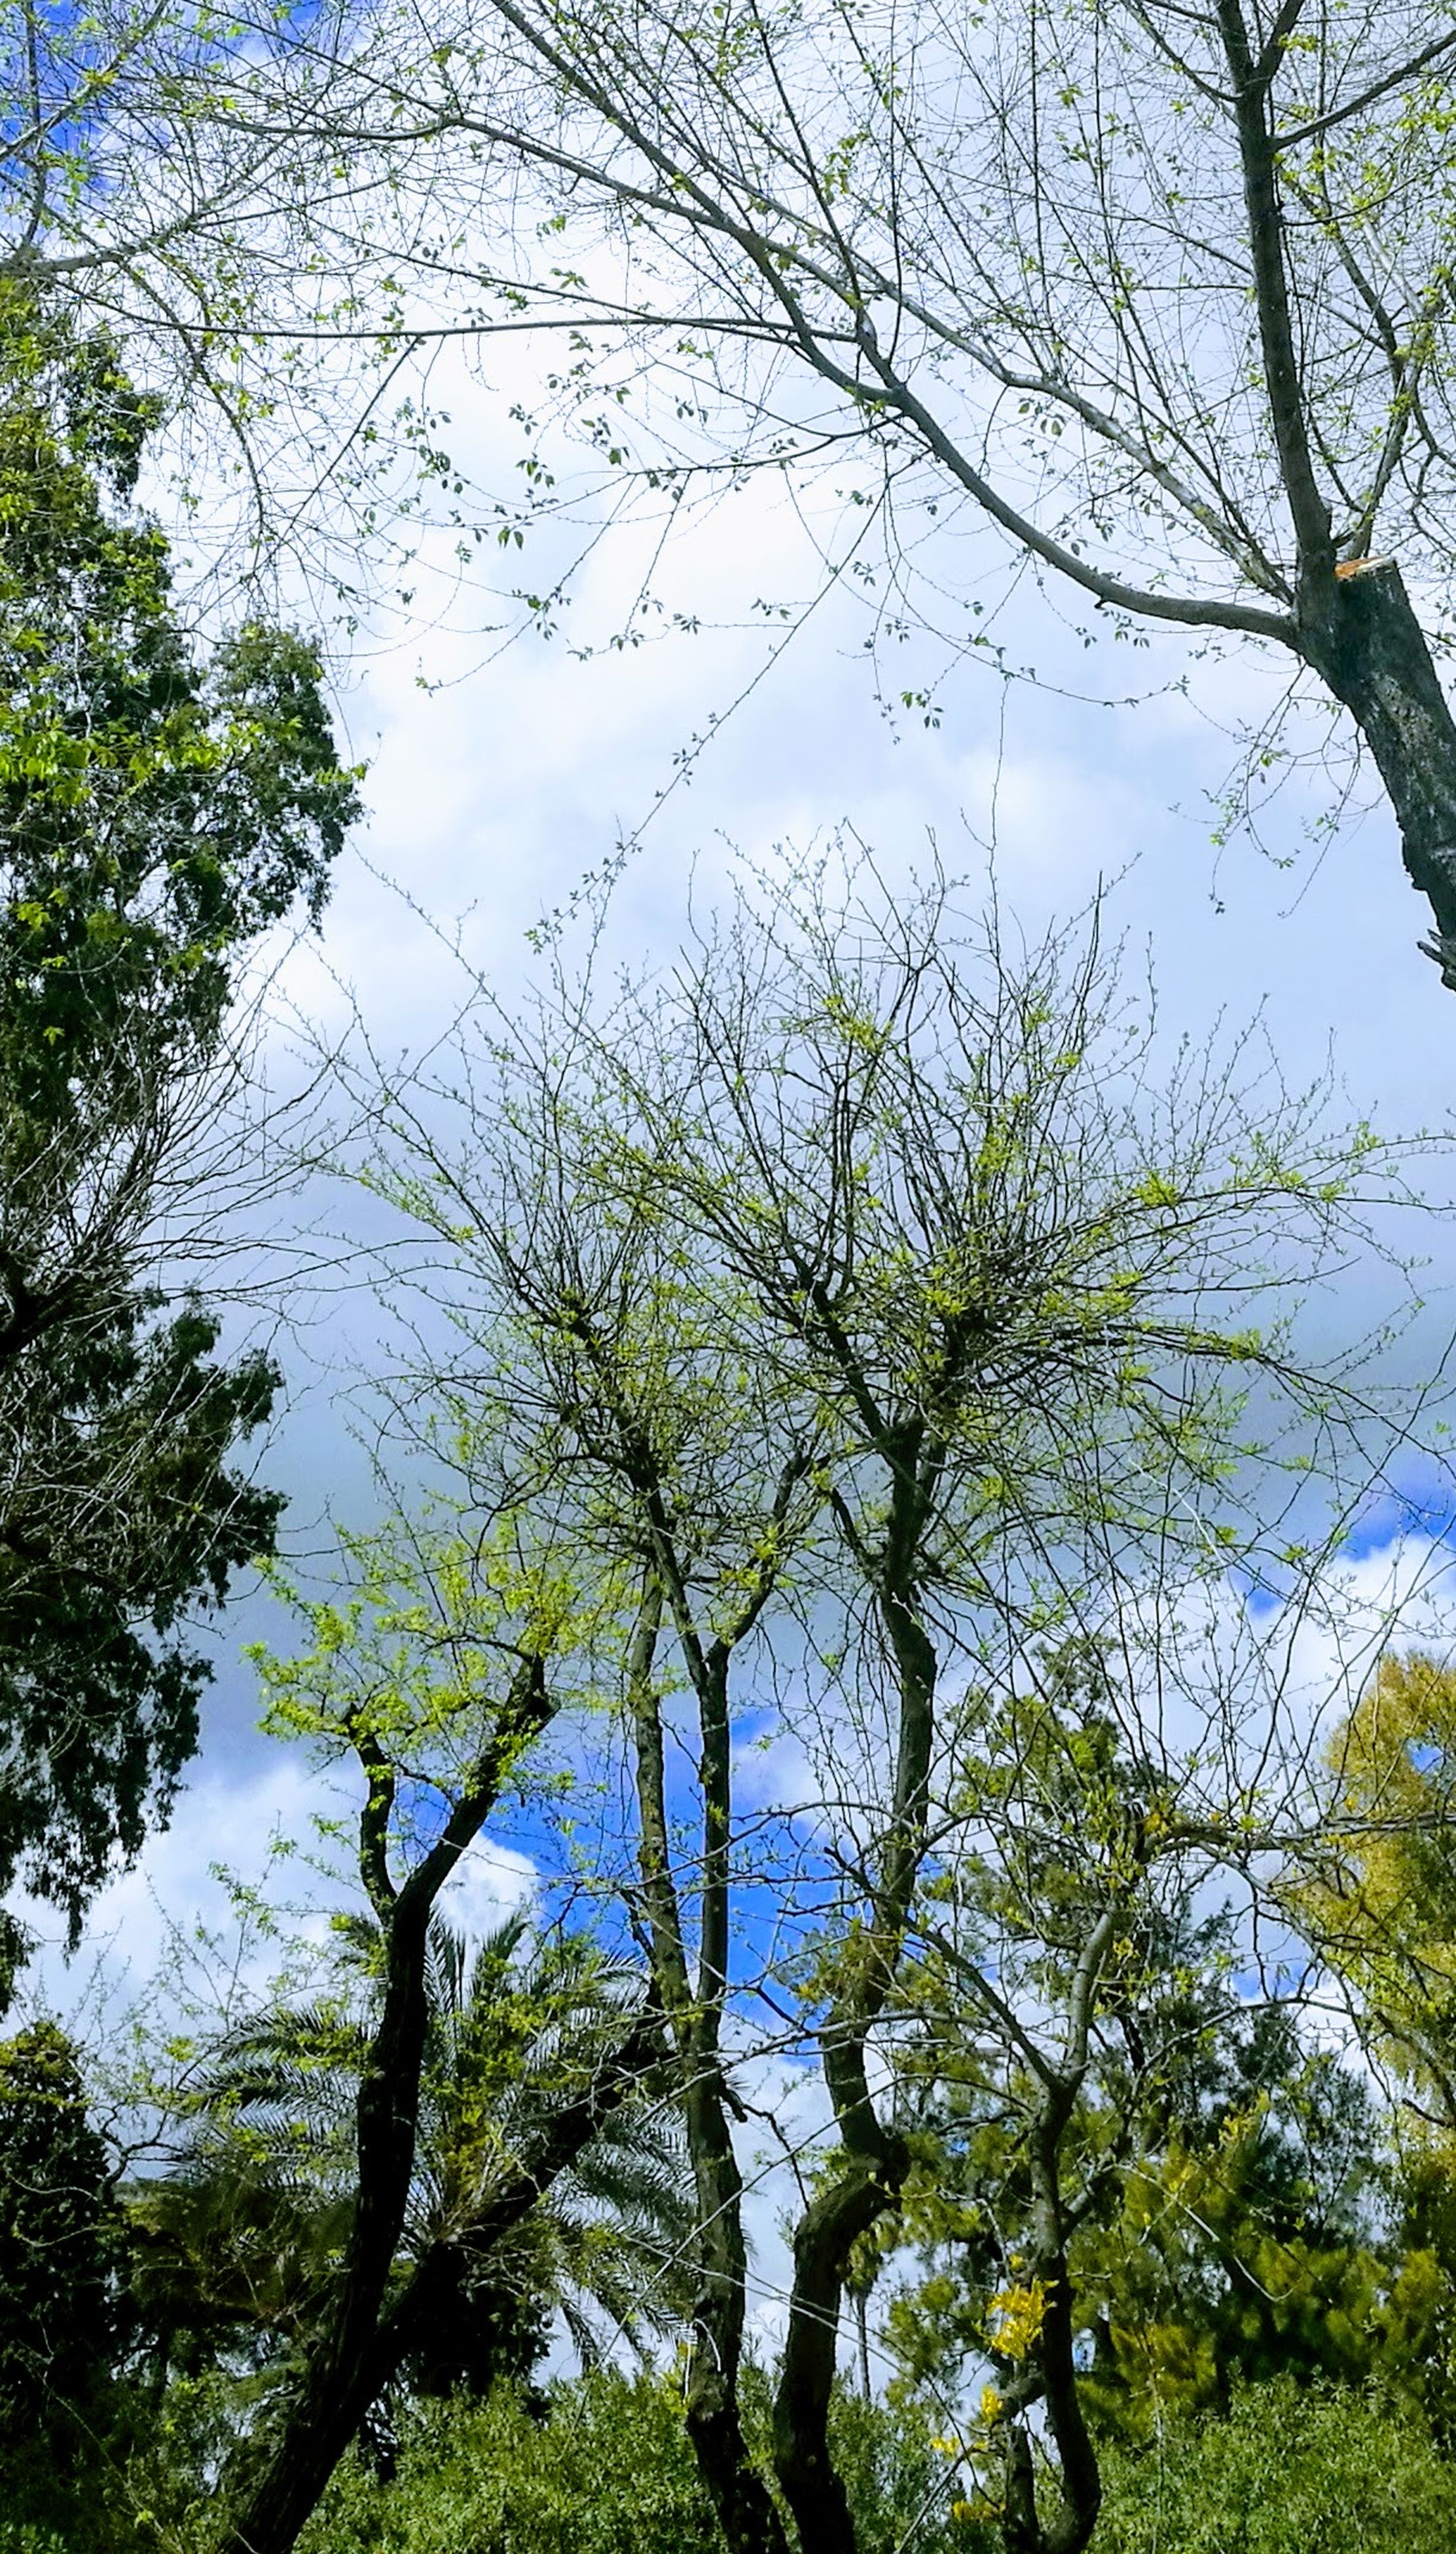 tree, nature, sky, growth, branch, no people, beauty in nature, tranquility, low angle view, outdoors, day, close-up